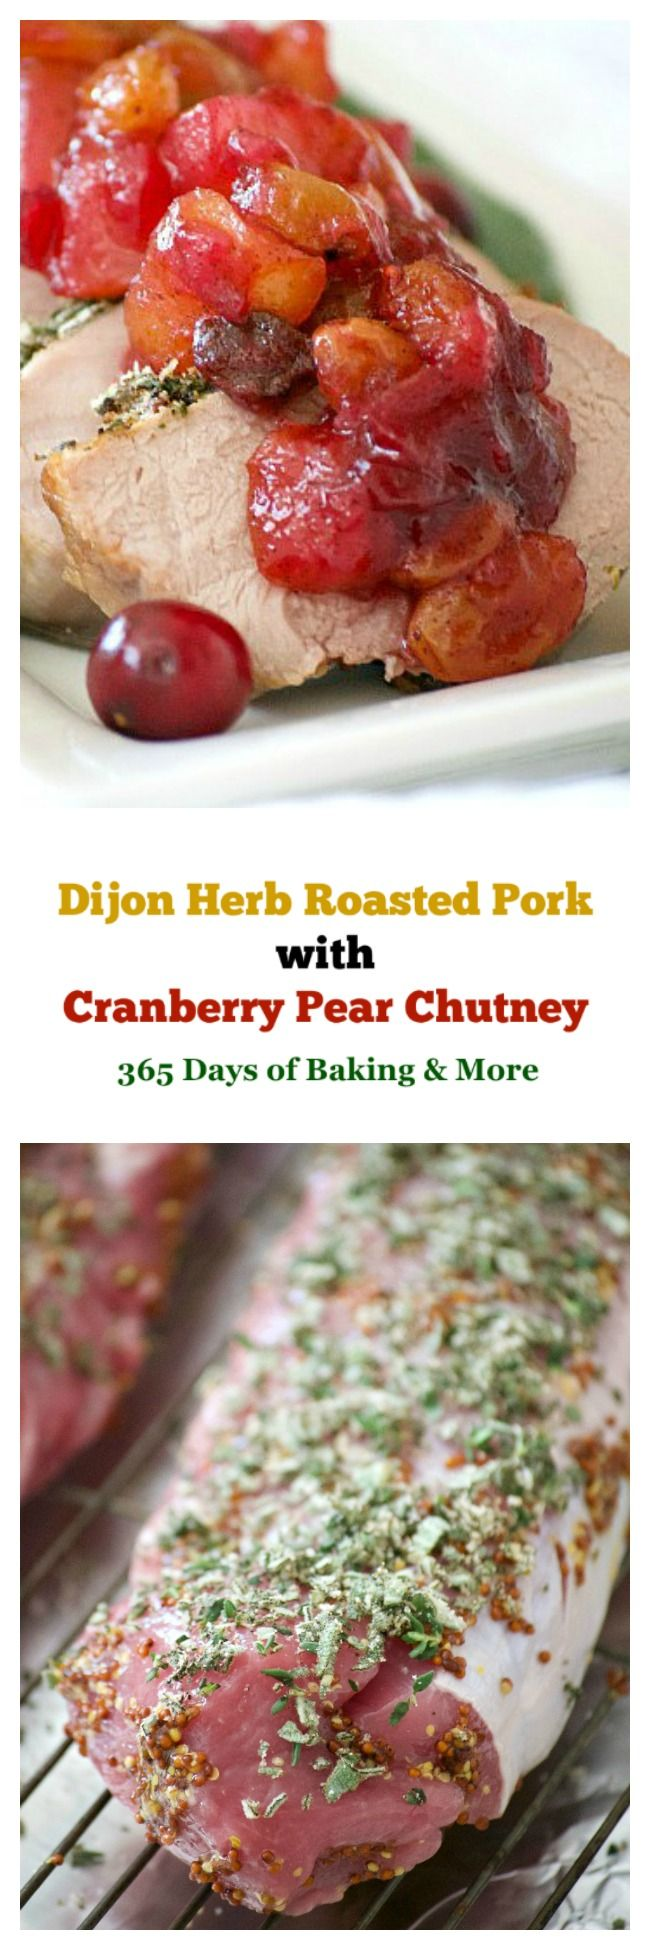 This Dijon Herb Roasted Pork with Cranberry Pear Chutney made with a Smithfield Prime Pork Tenderloin is an easy and delicious dinner perfectly suited for holiday entertaining! #ad